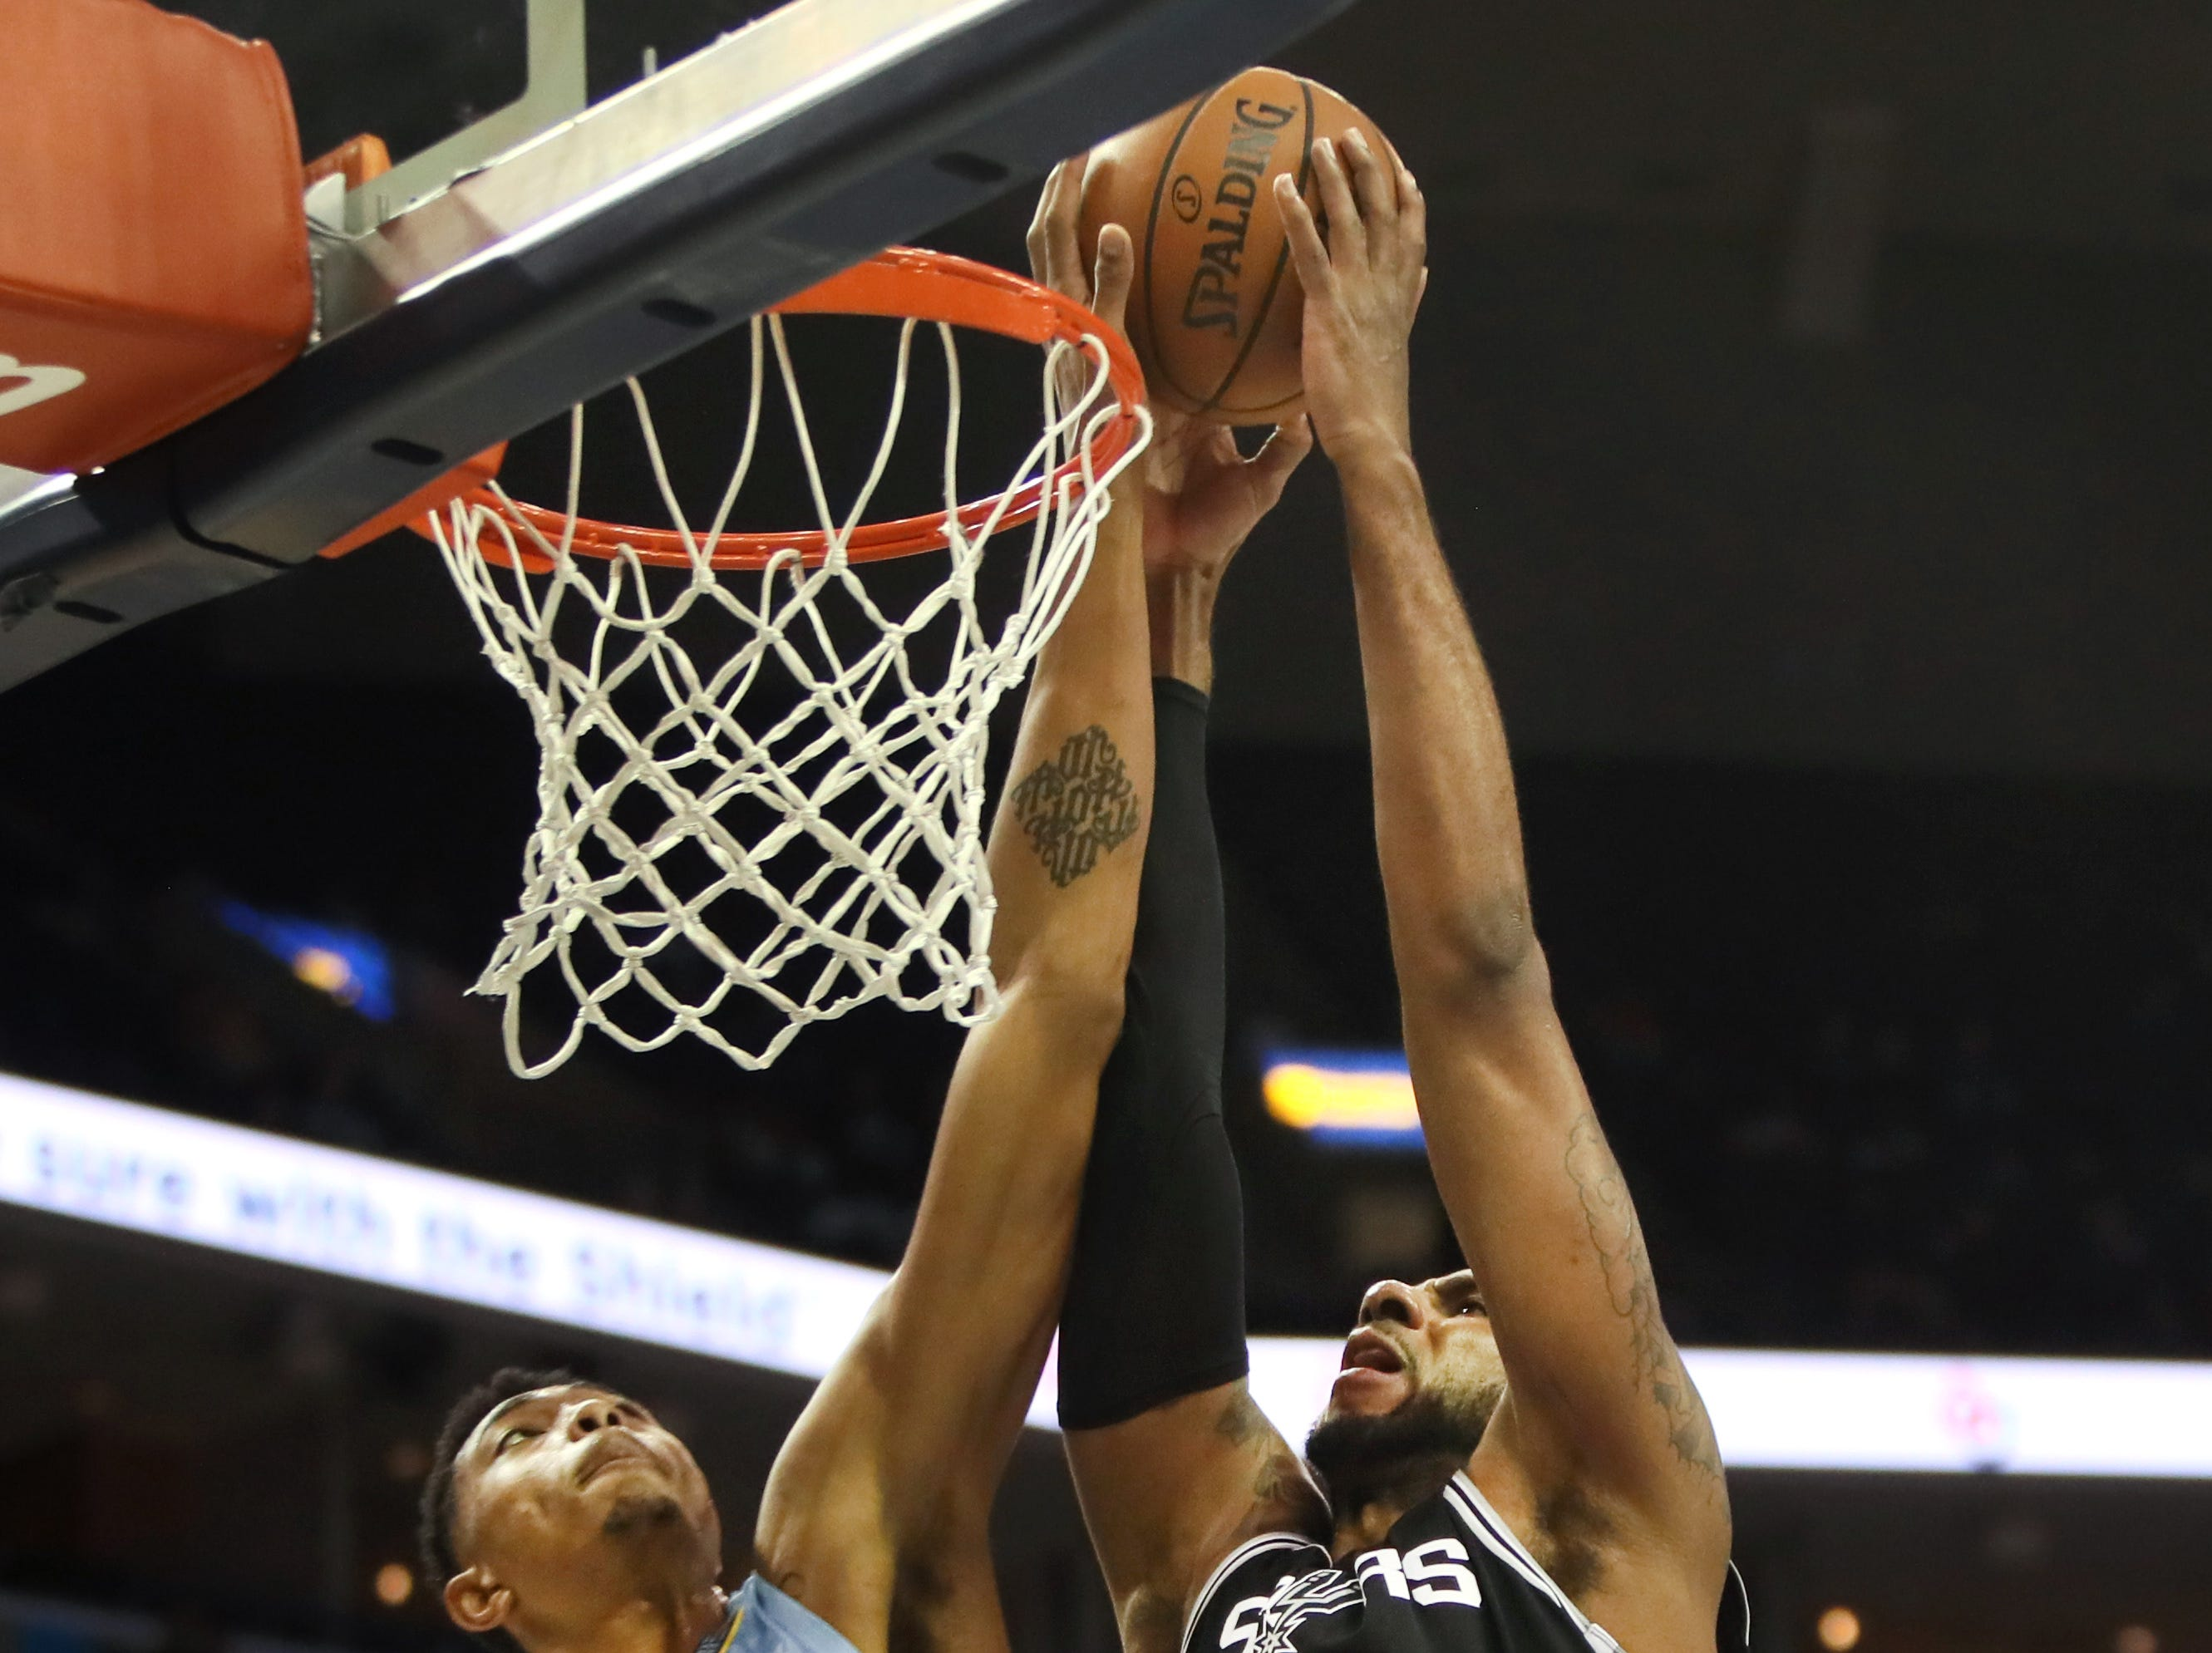 Memphis Grizzlies forward Bruno Caboclo blocks a shot against San Antonio Spurs center LaMarcus Aldridge during their game at the FEdExForum on Tuesday, Feb. 12, 2019.